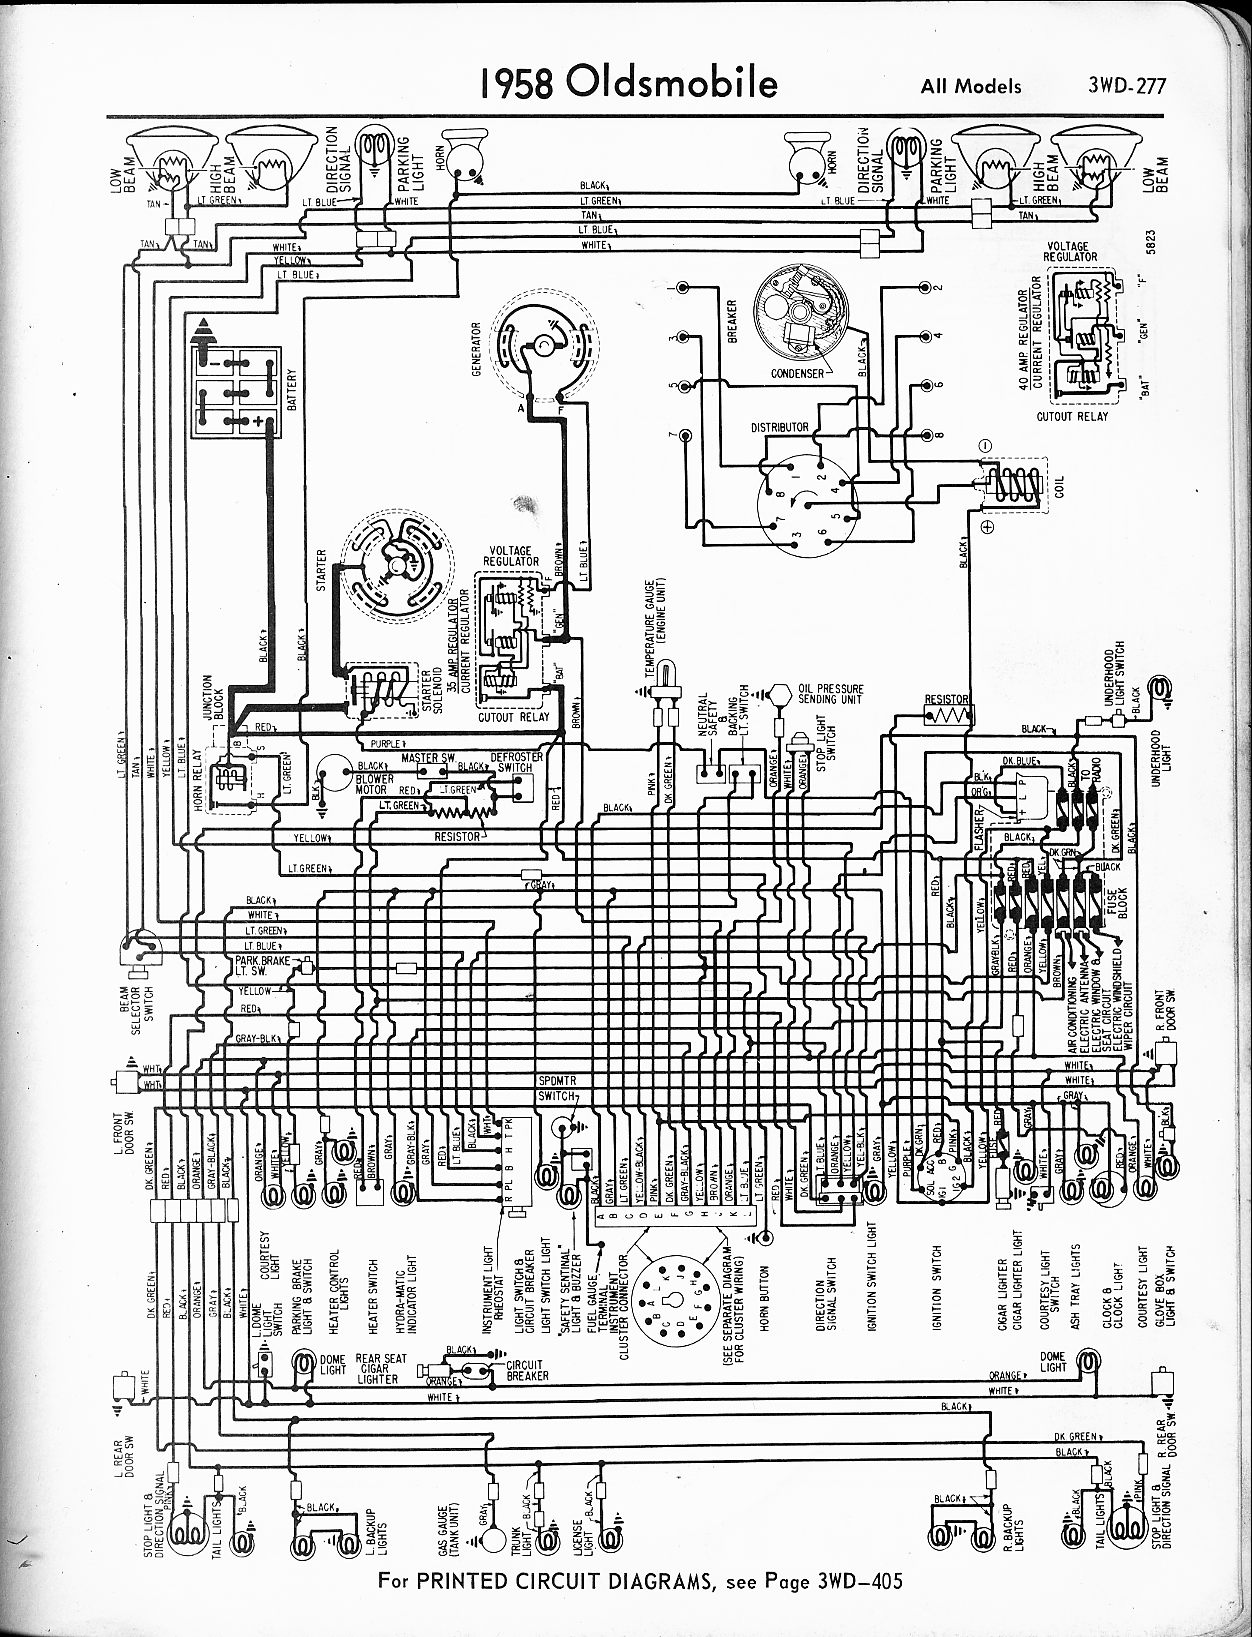 68 oldsmobile cutlass wiring diagram 95 cutlass wiring diagram